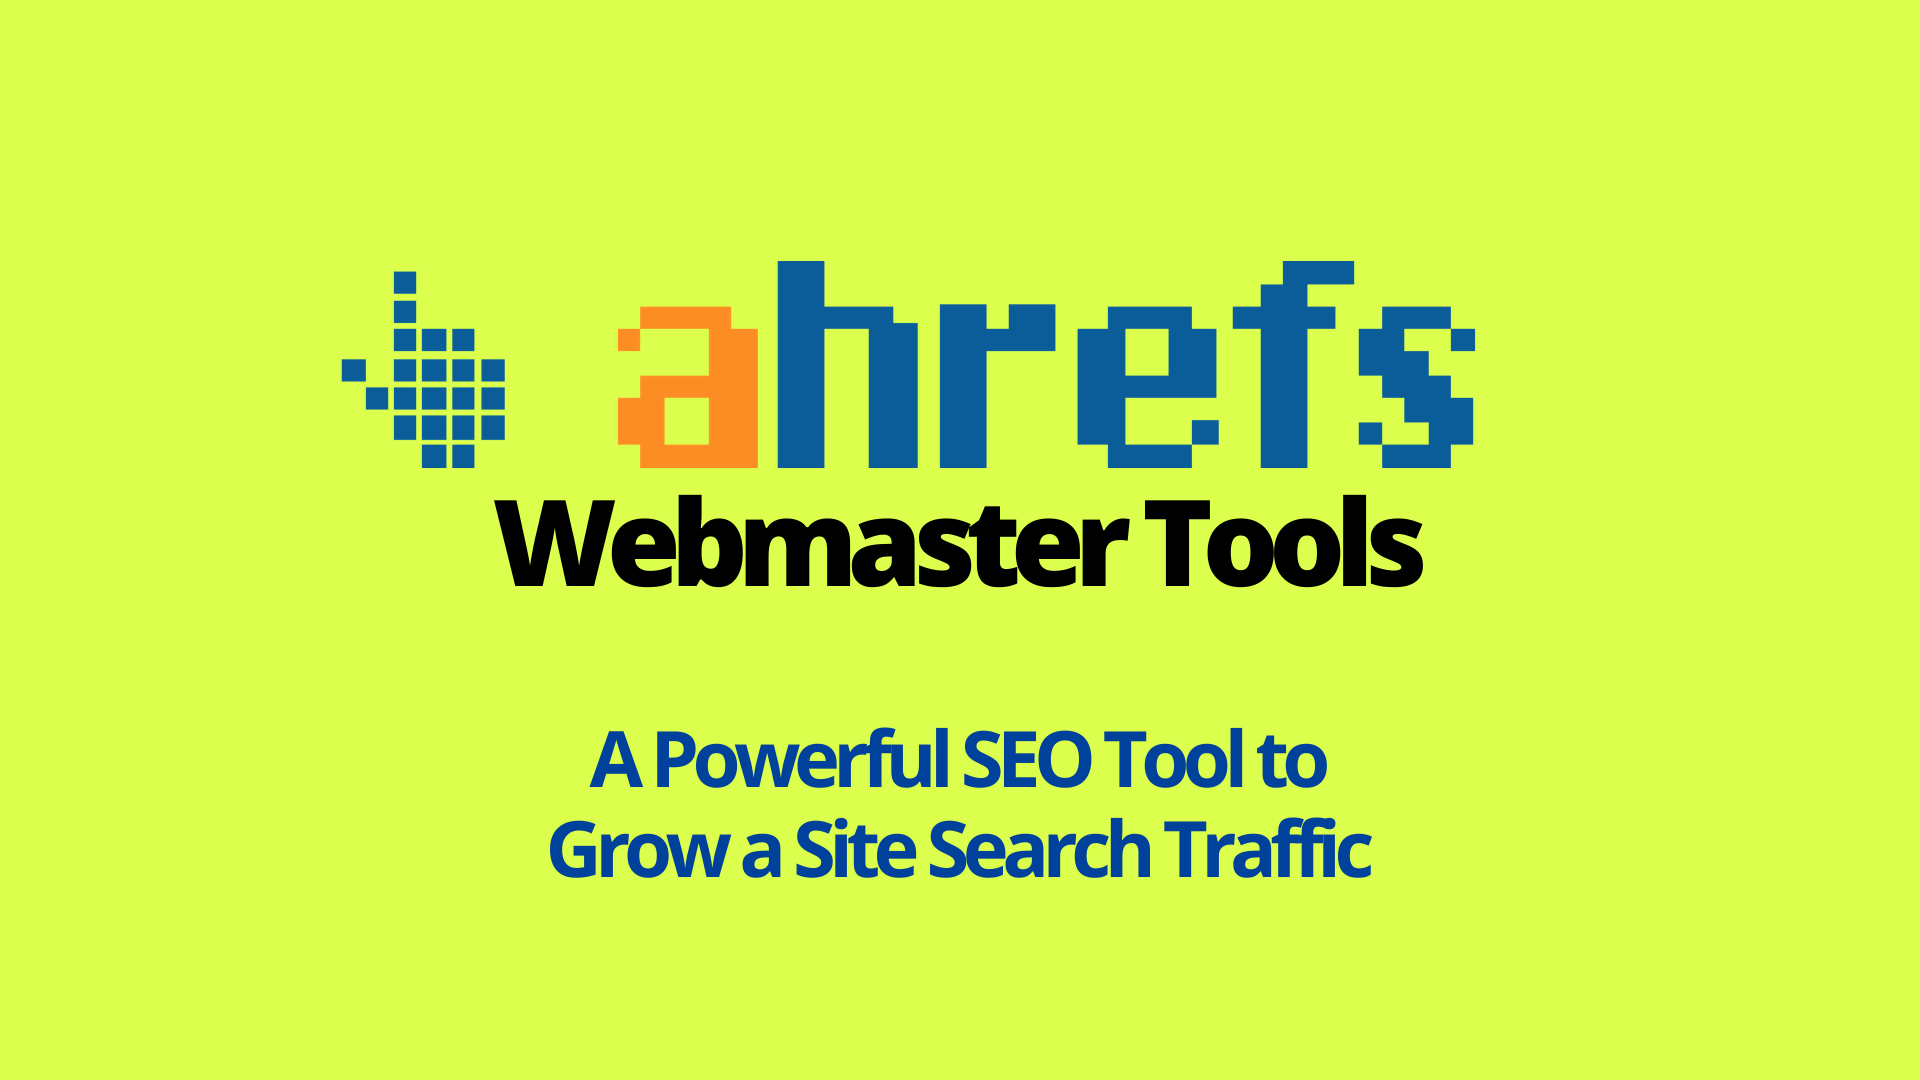 What does Ahrefs Webmaster Tools offer?